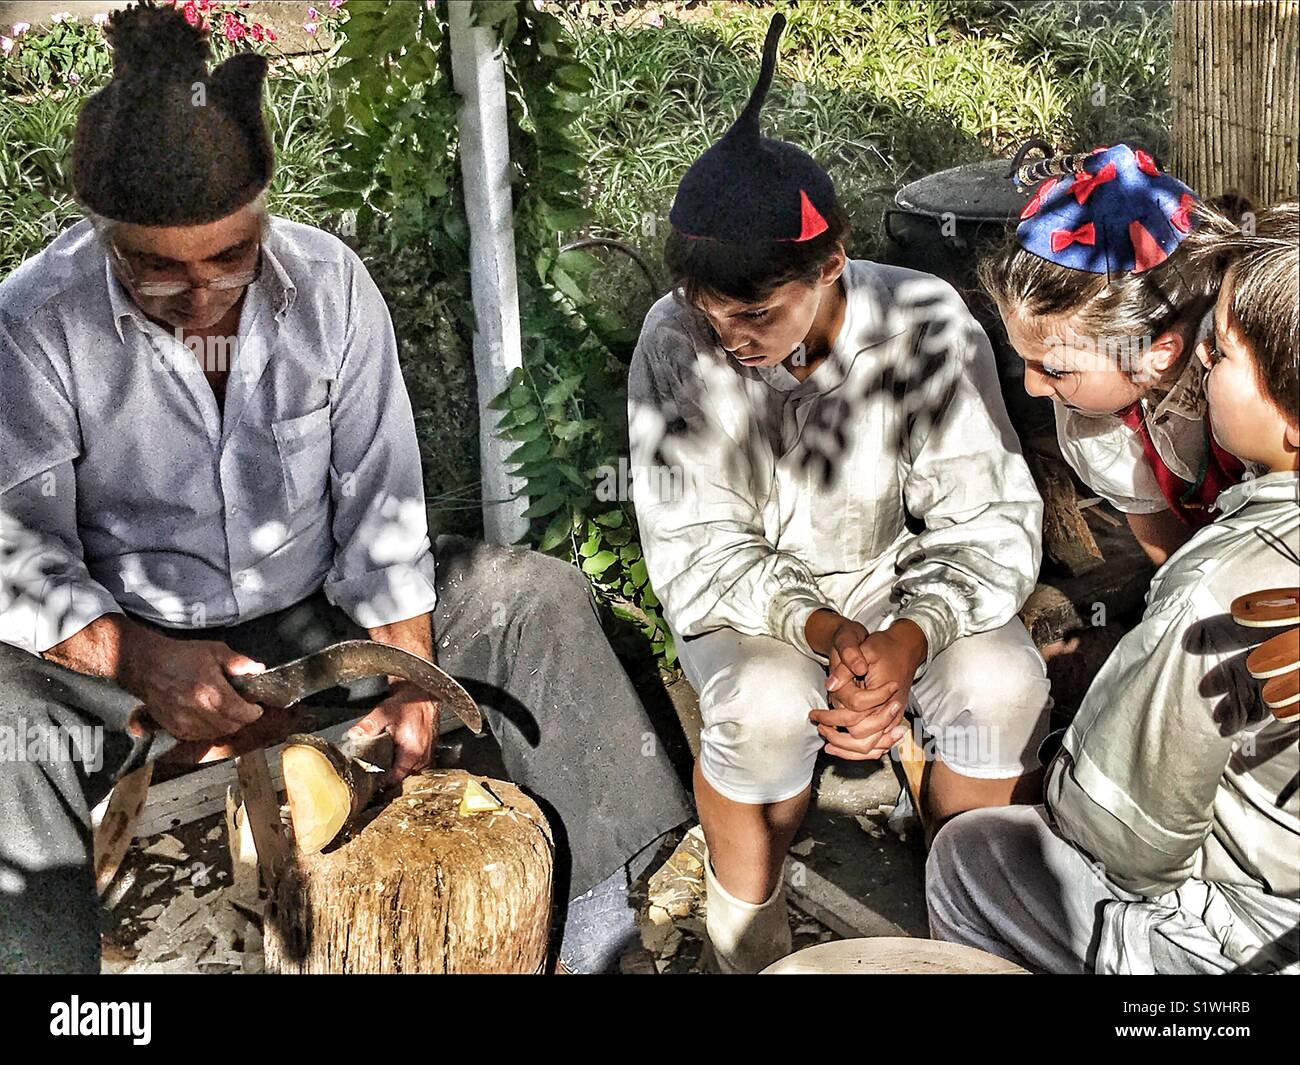 Children watching a craftsman carving wood at the Christmas Market, Funchal, Madeira, Portugal - Stock Image